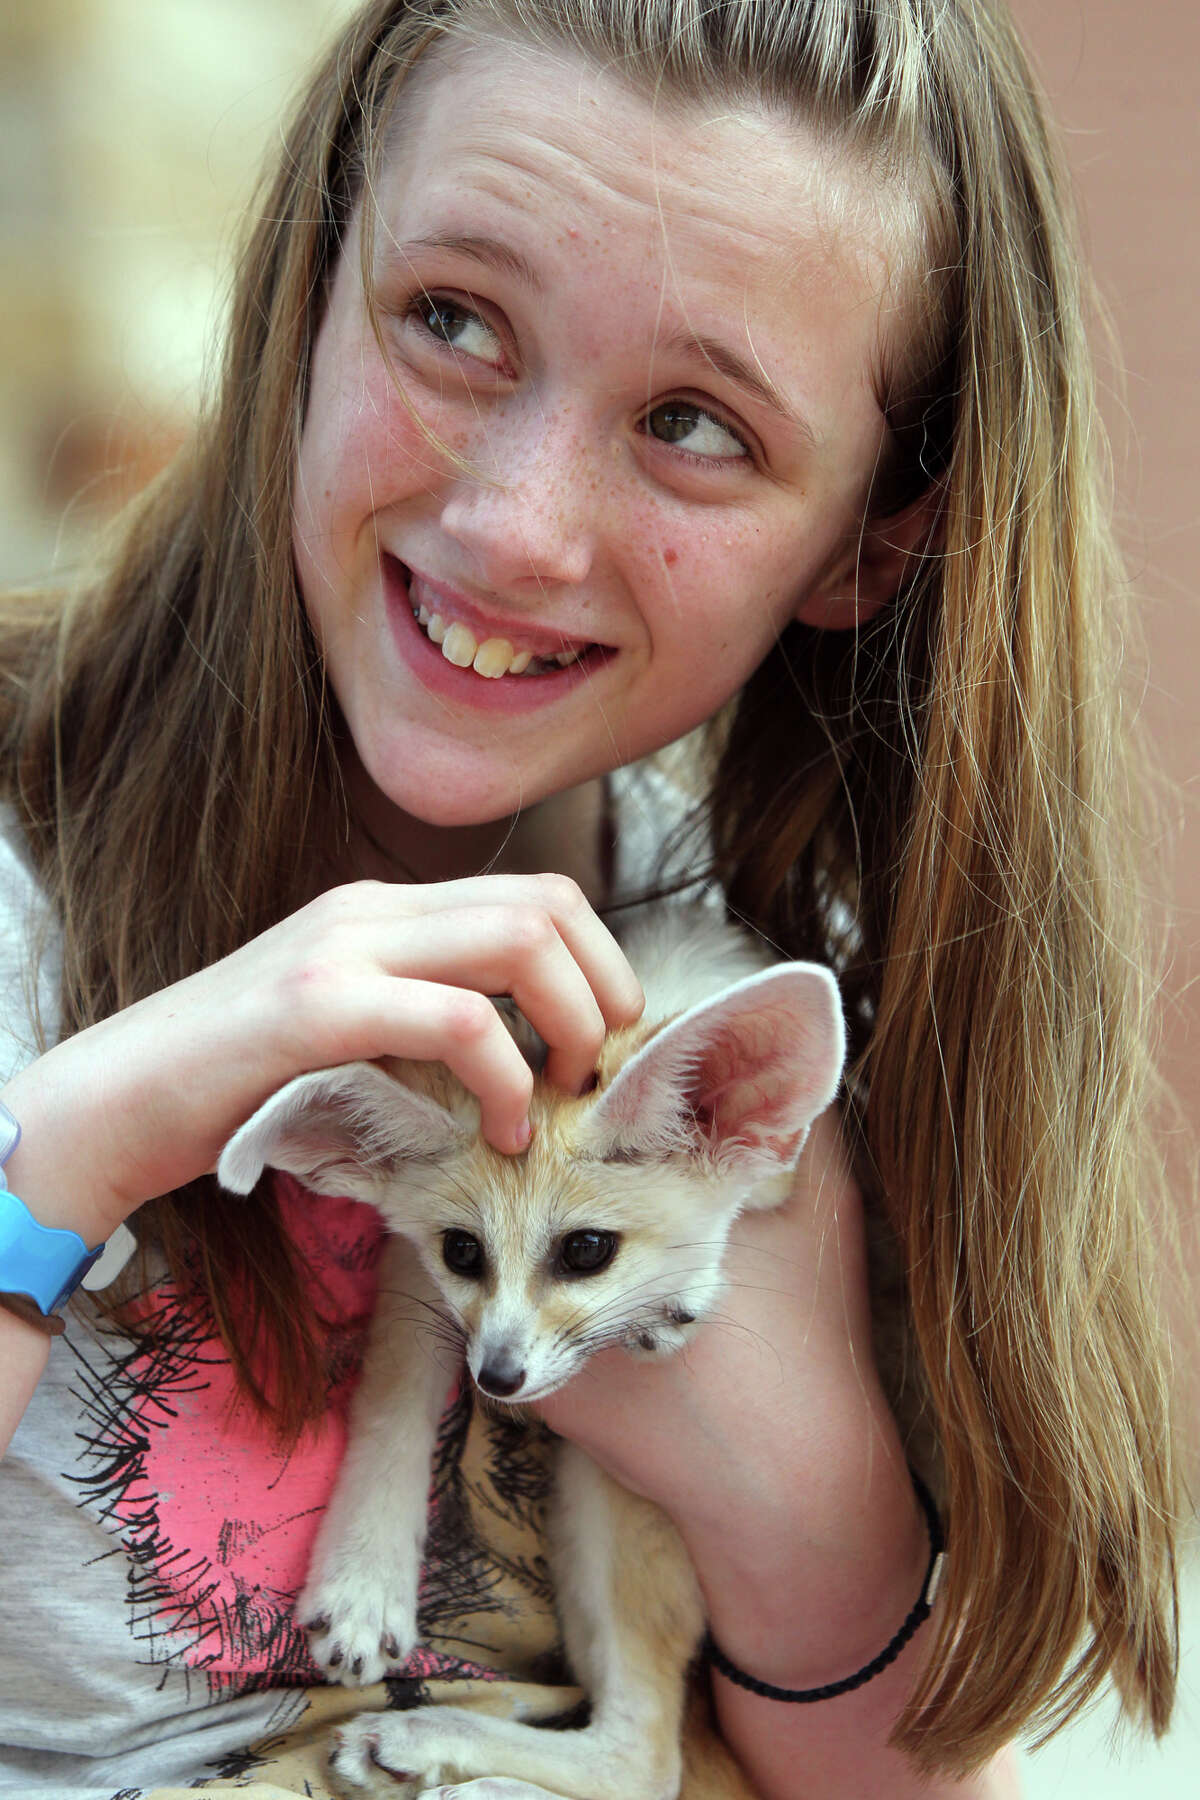 Abbey Paulson,12, cuddles with a fennec fox Wednesday June 20, 2012 at Morgan's Wonderland during a special presentation by the Zoofari Animal Show. The fennec fox is a small nocturnal fox found in north Africa with large ears that help it dissipate heat. Click to browse all of the EN's most memorable photos of 2012